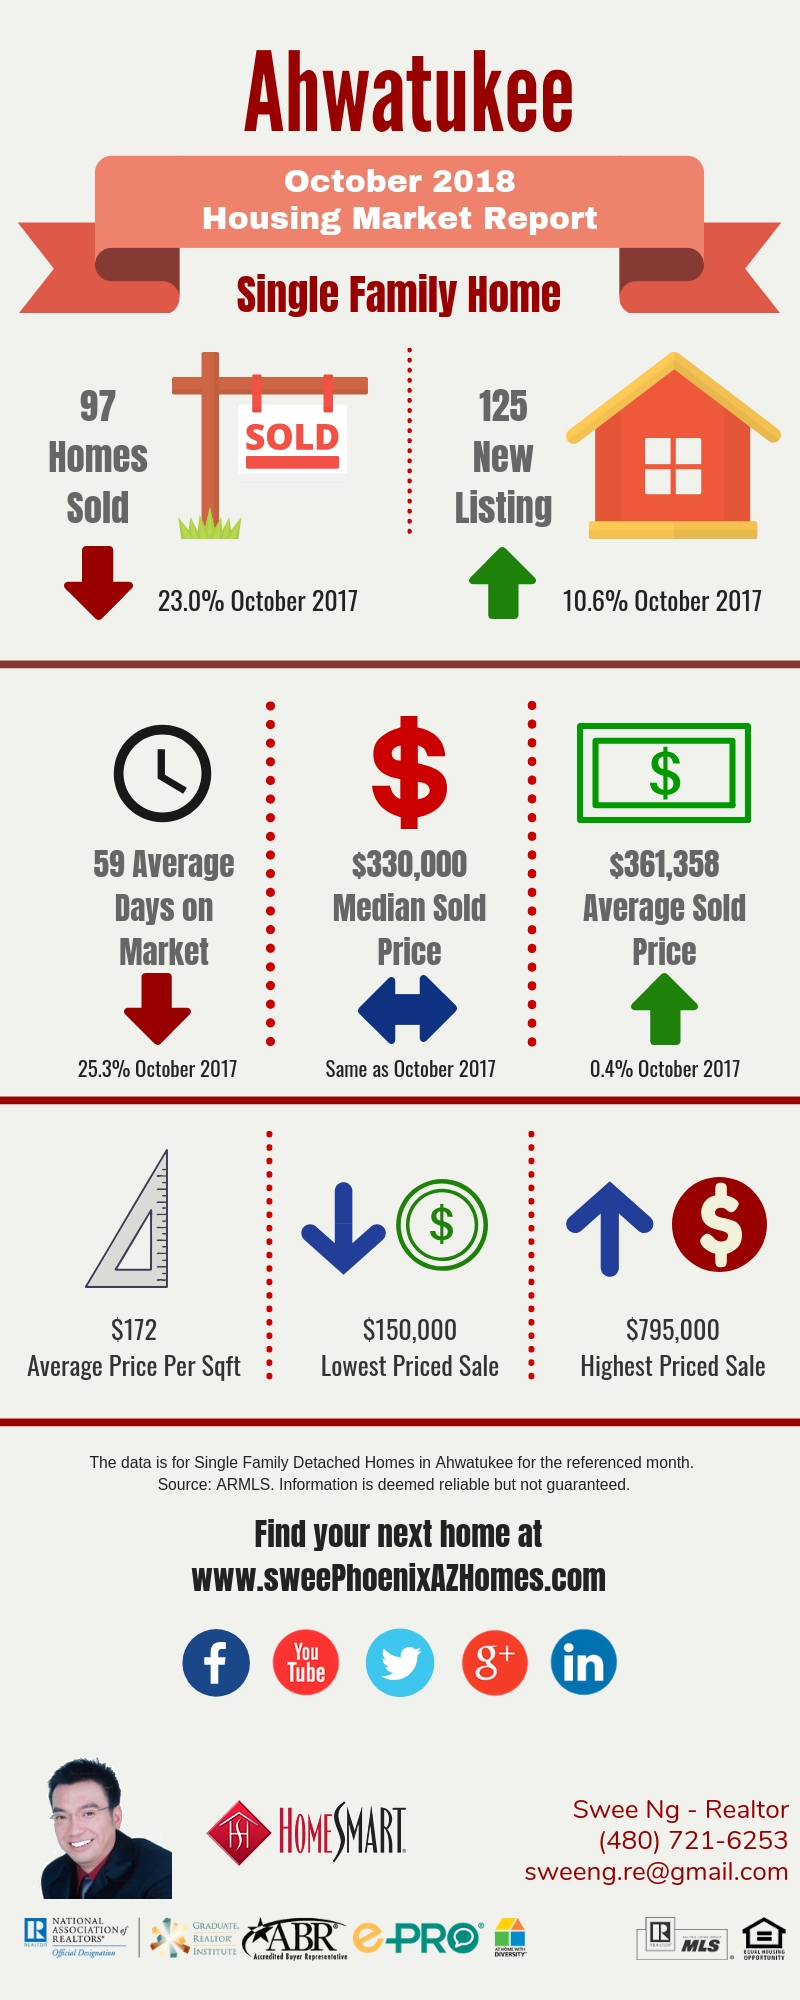 Ahwatukee Housing Market Trends Report October 2018, House Value, Real Estate and Statistic by Swee Ng